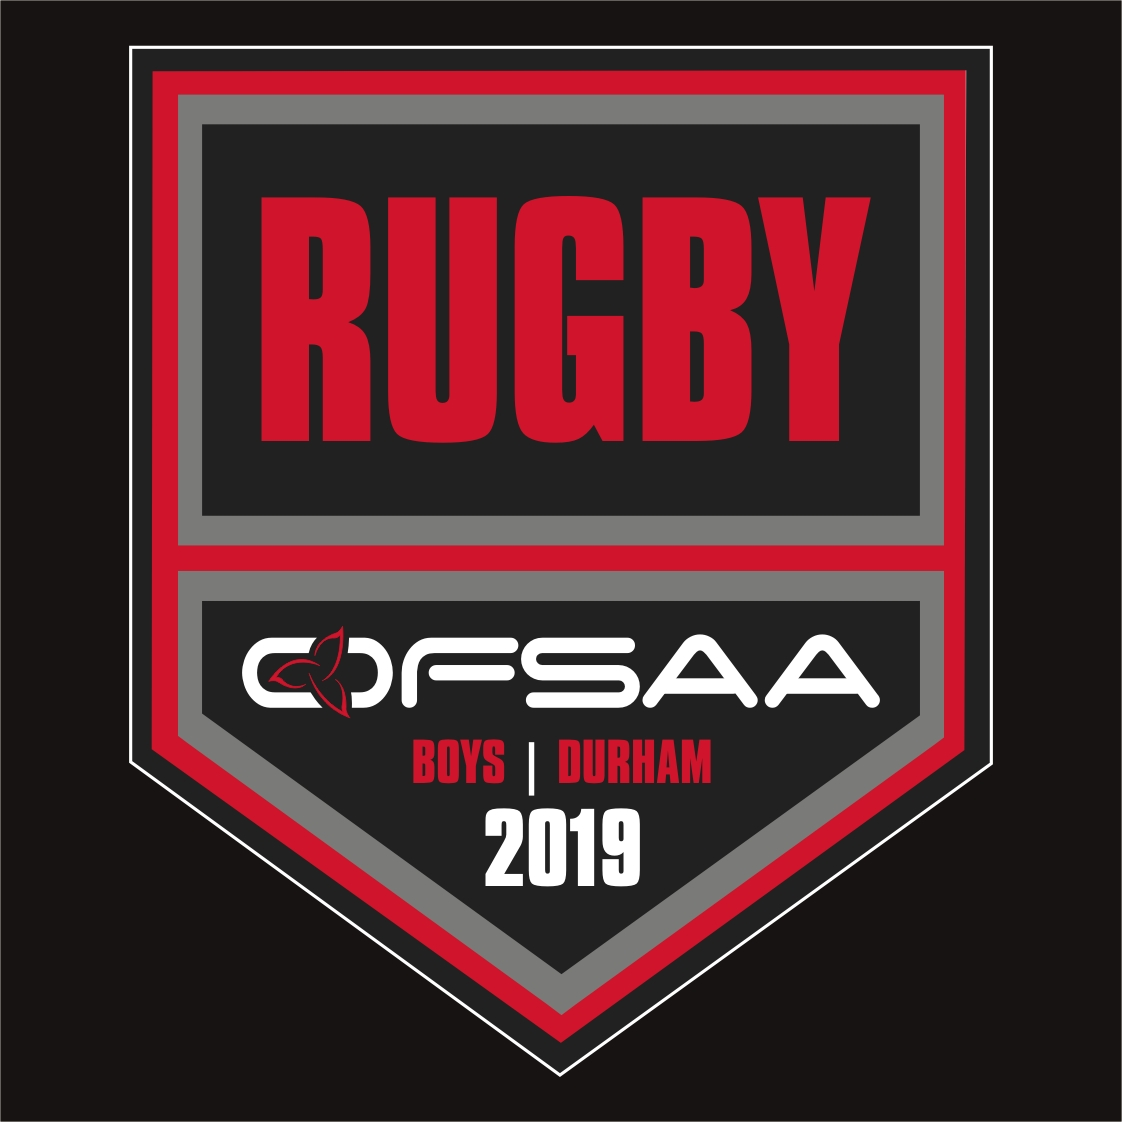 2019 Boys Rugby logo black.jpg